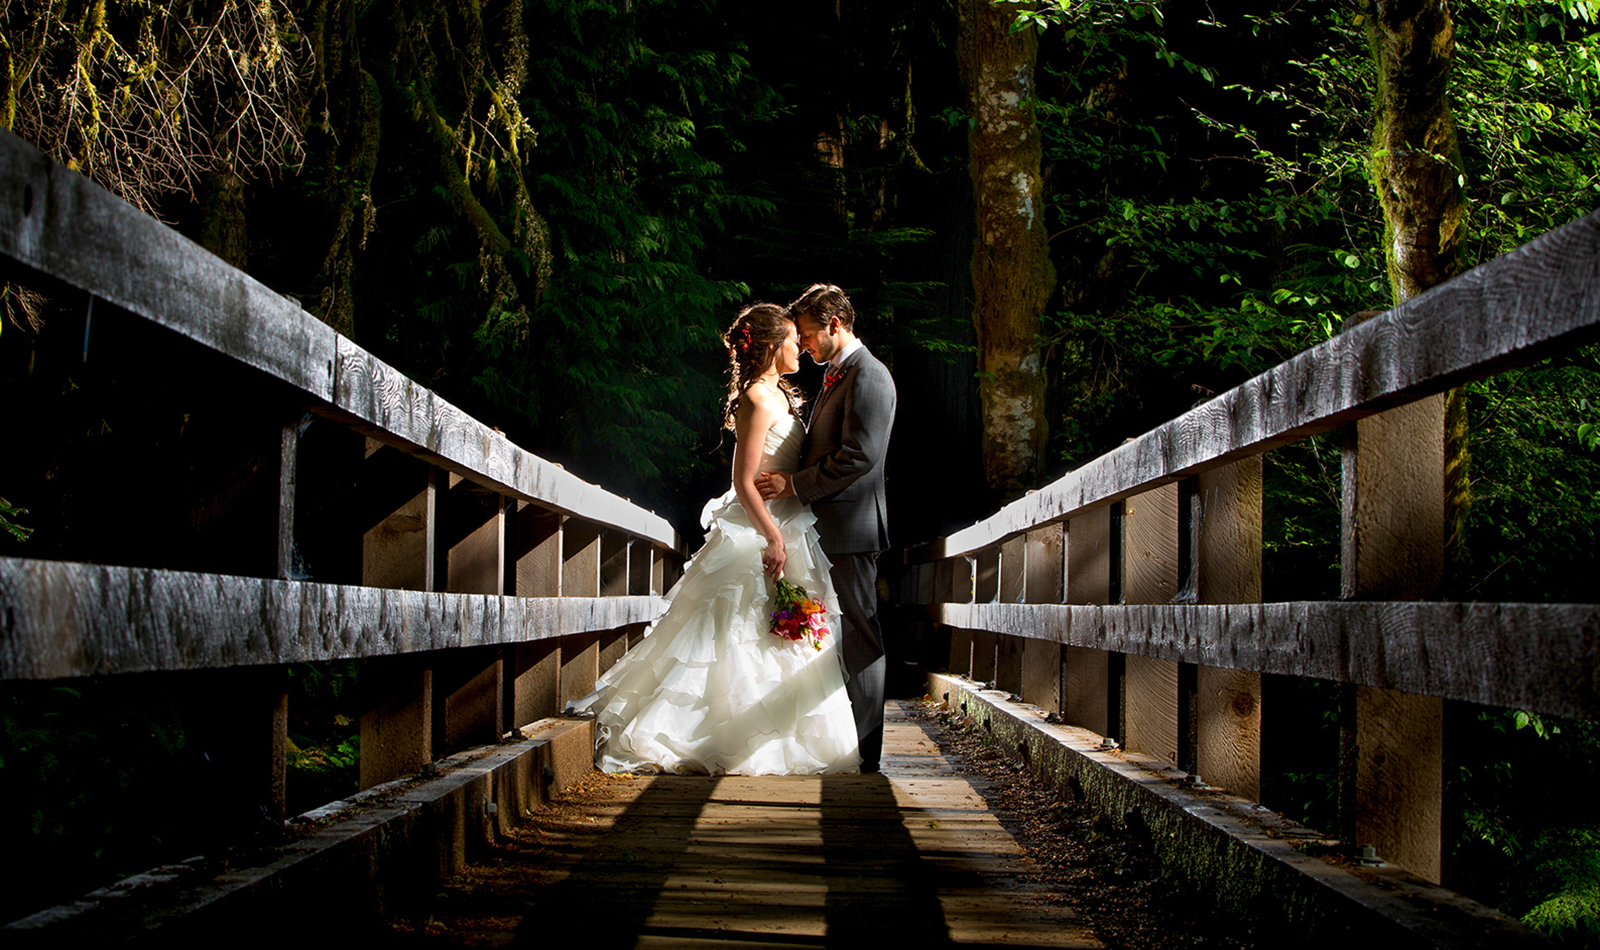 The bride and groom kiss on a bridge during their Lake Crescent Lodge Wedding in Port Angeles, Washington. (Wedding Photography by Scott Eklund /Red Box Pictures)